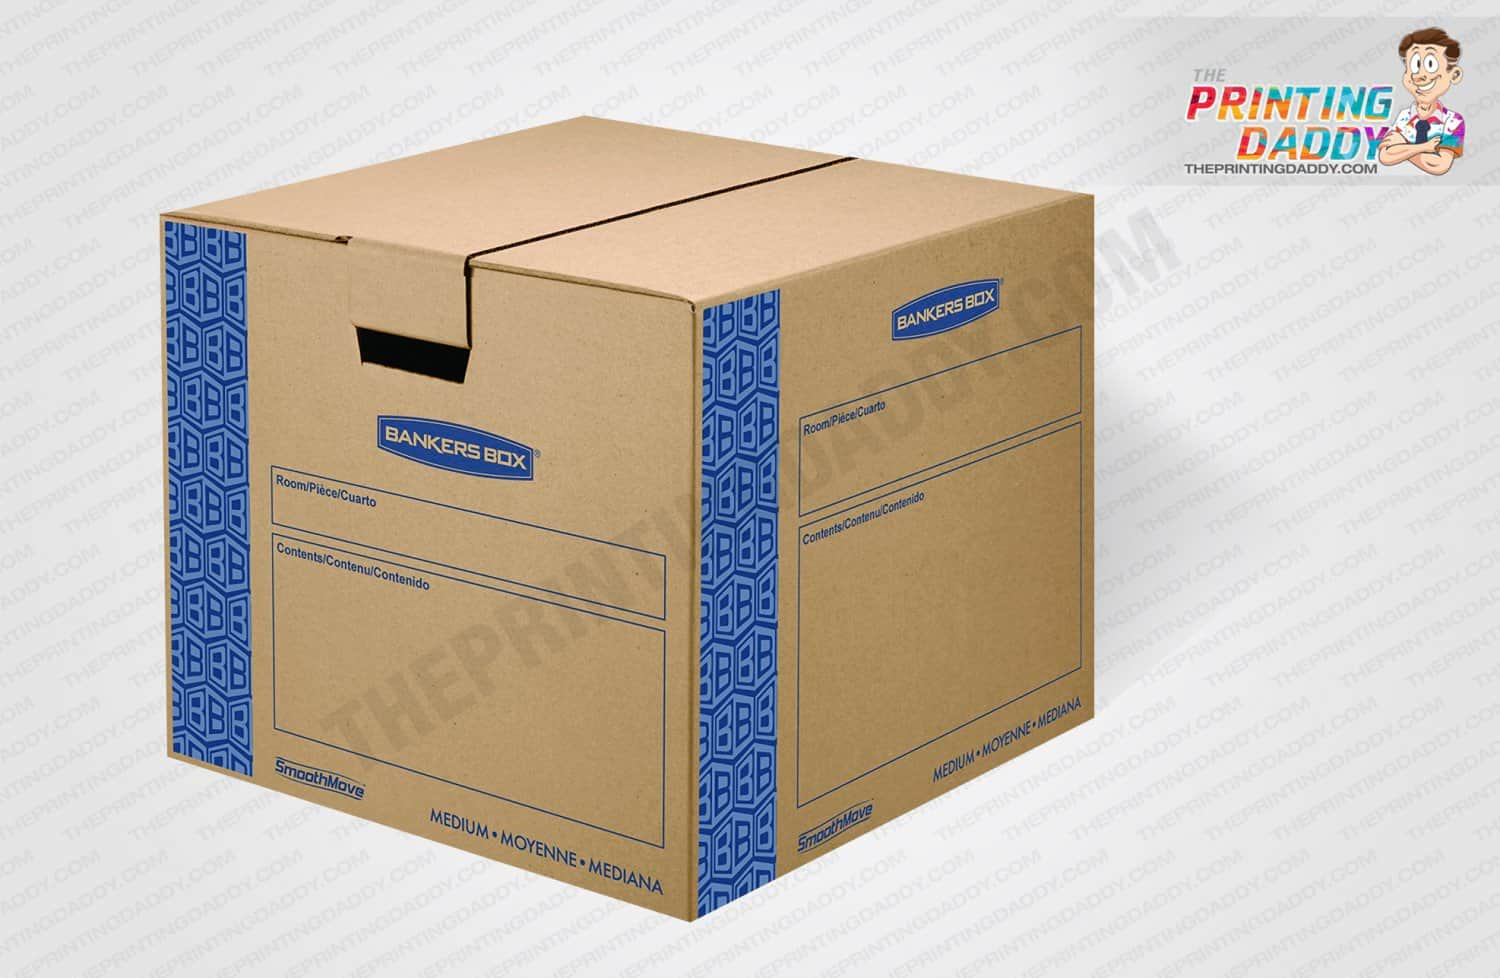 Heavy Duty Cardboard Packaging Boxes The Printing Daddy